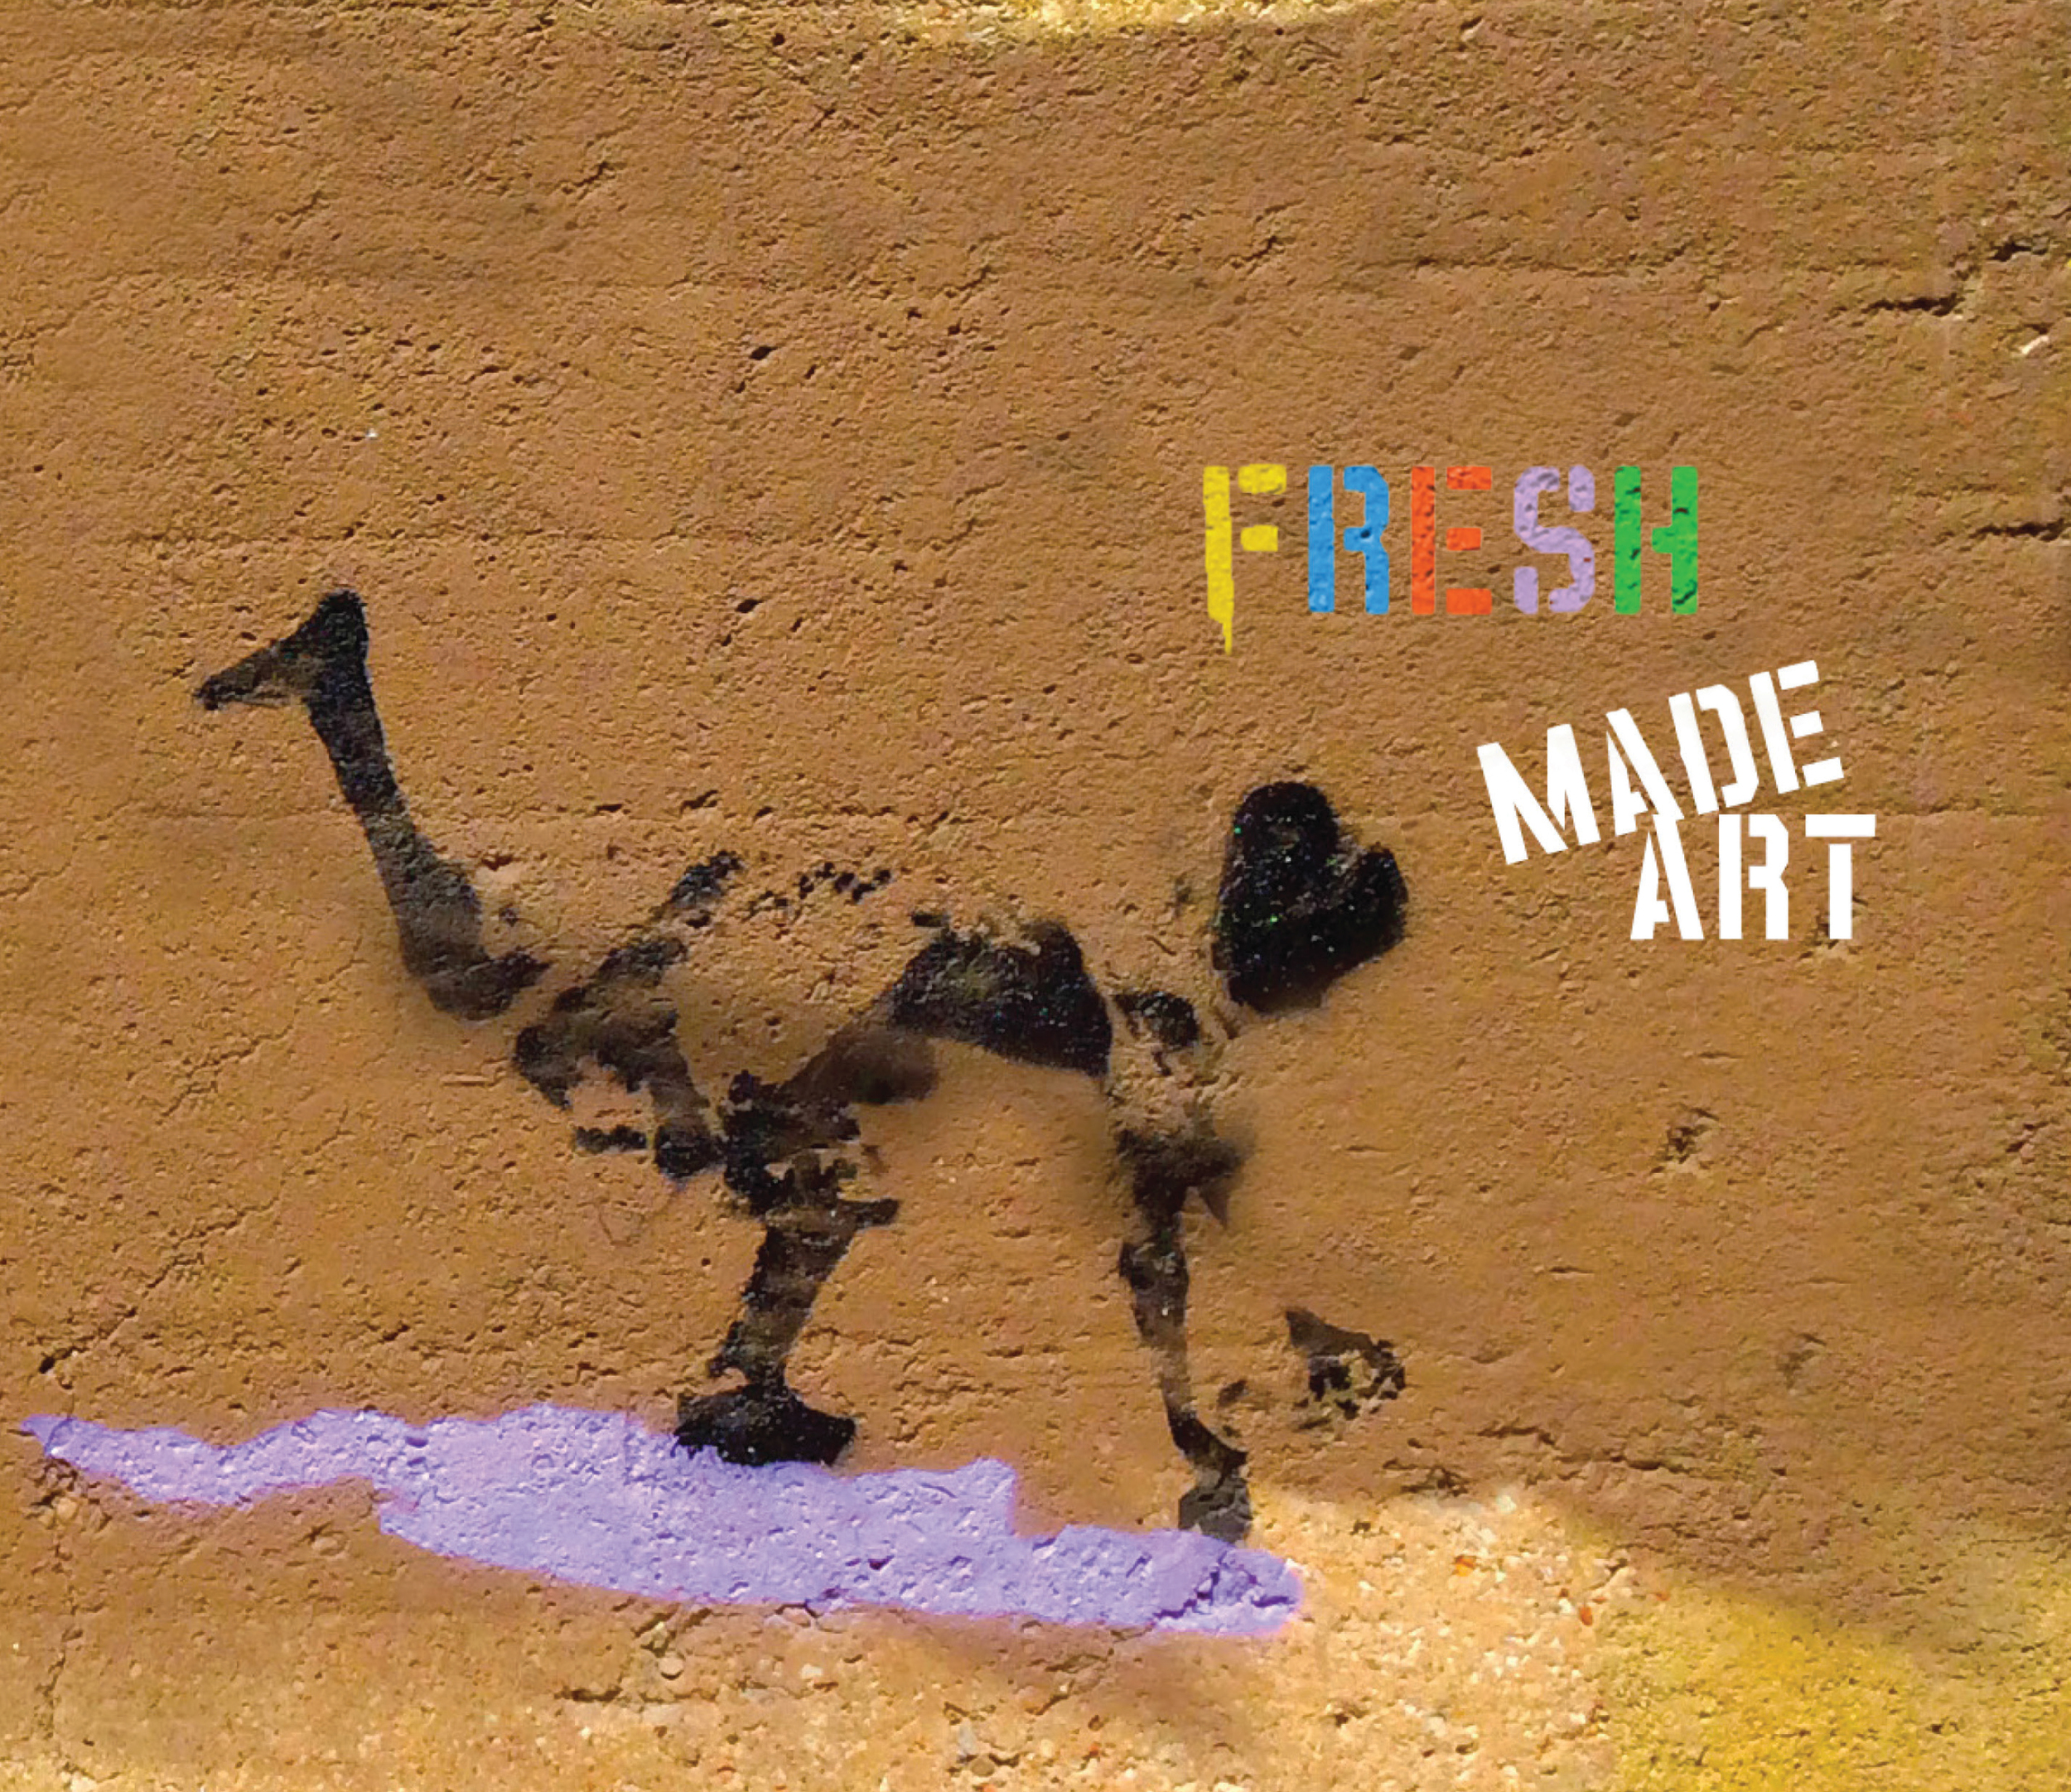 FRESH Made Art | FRESH